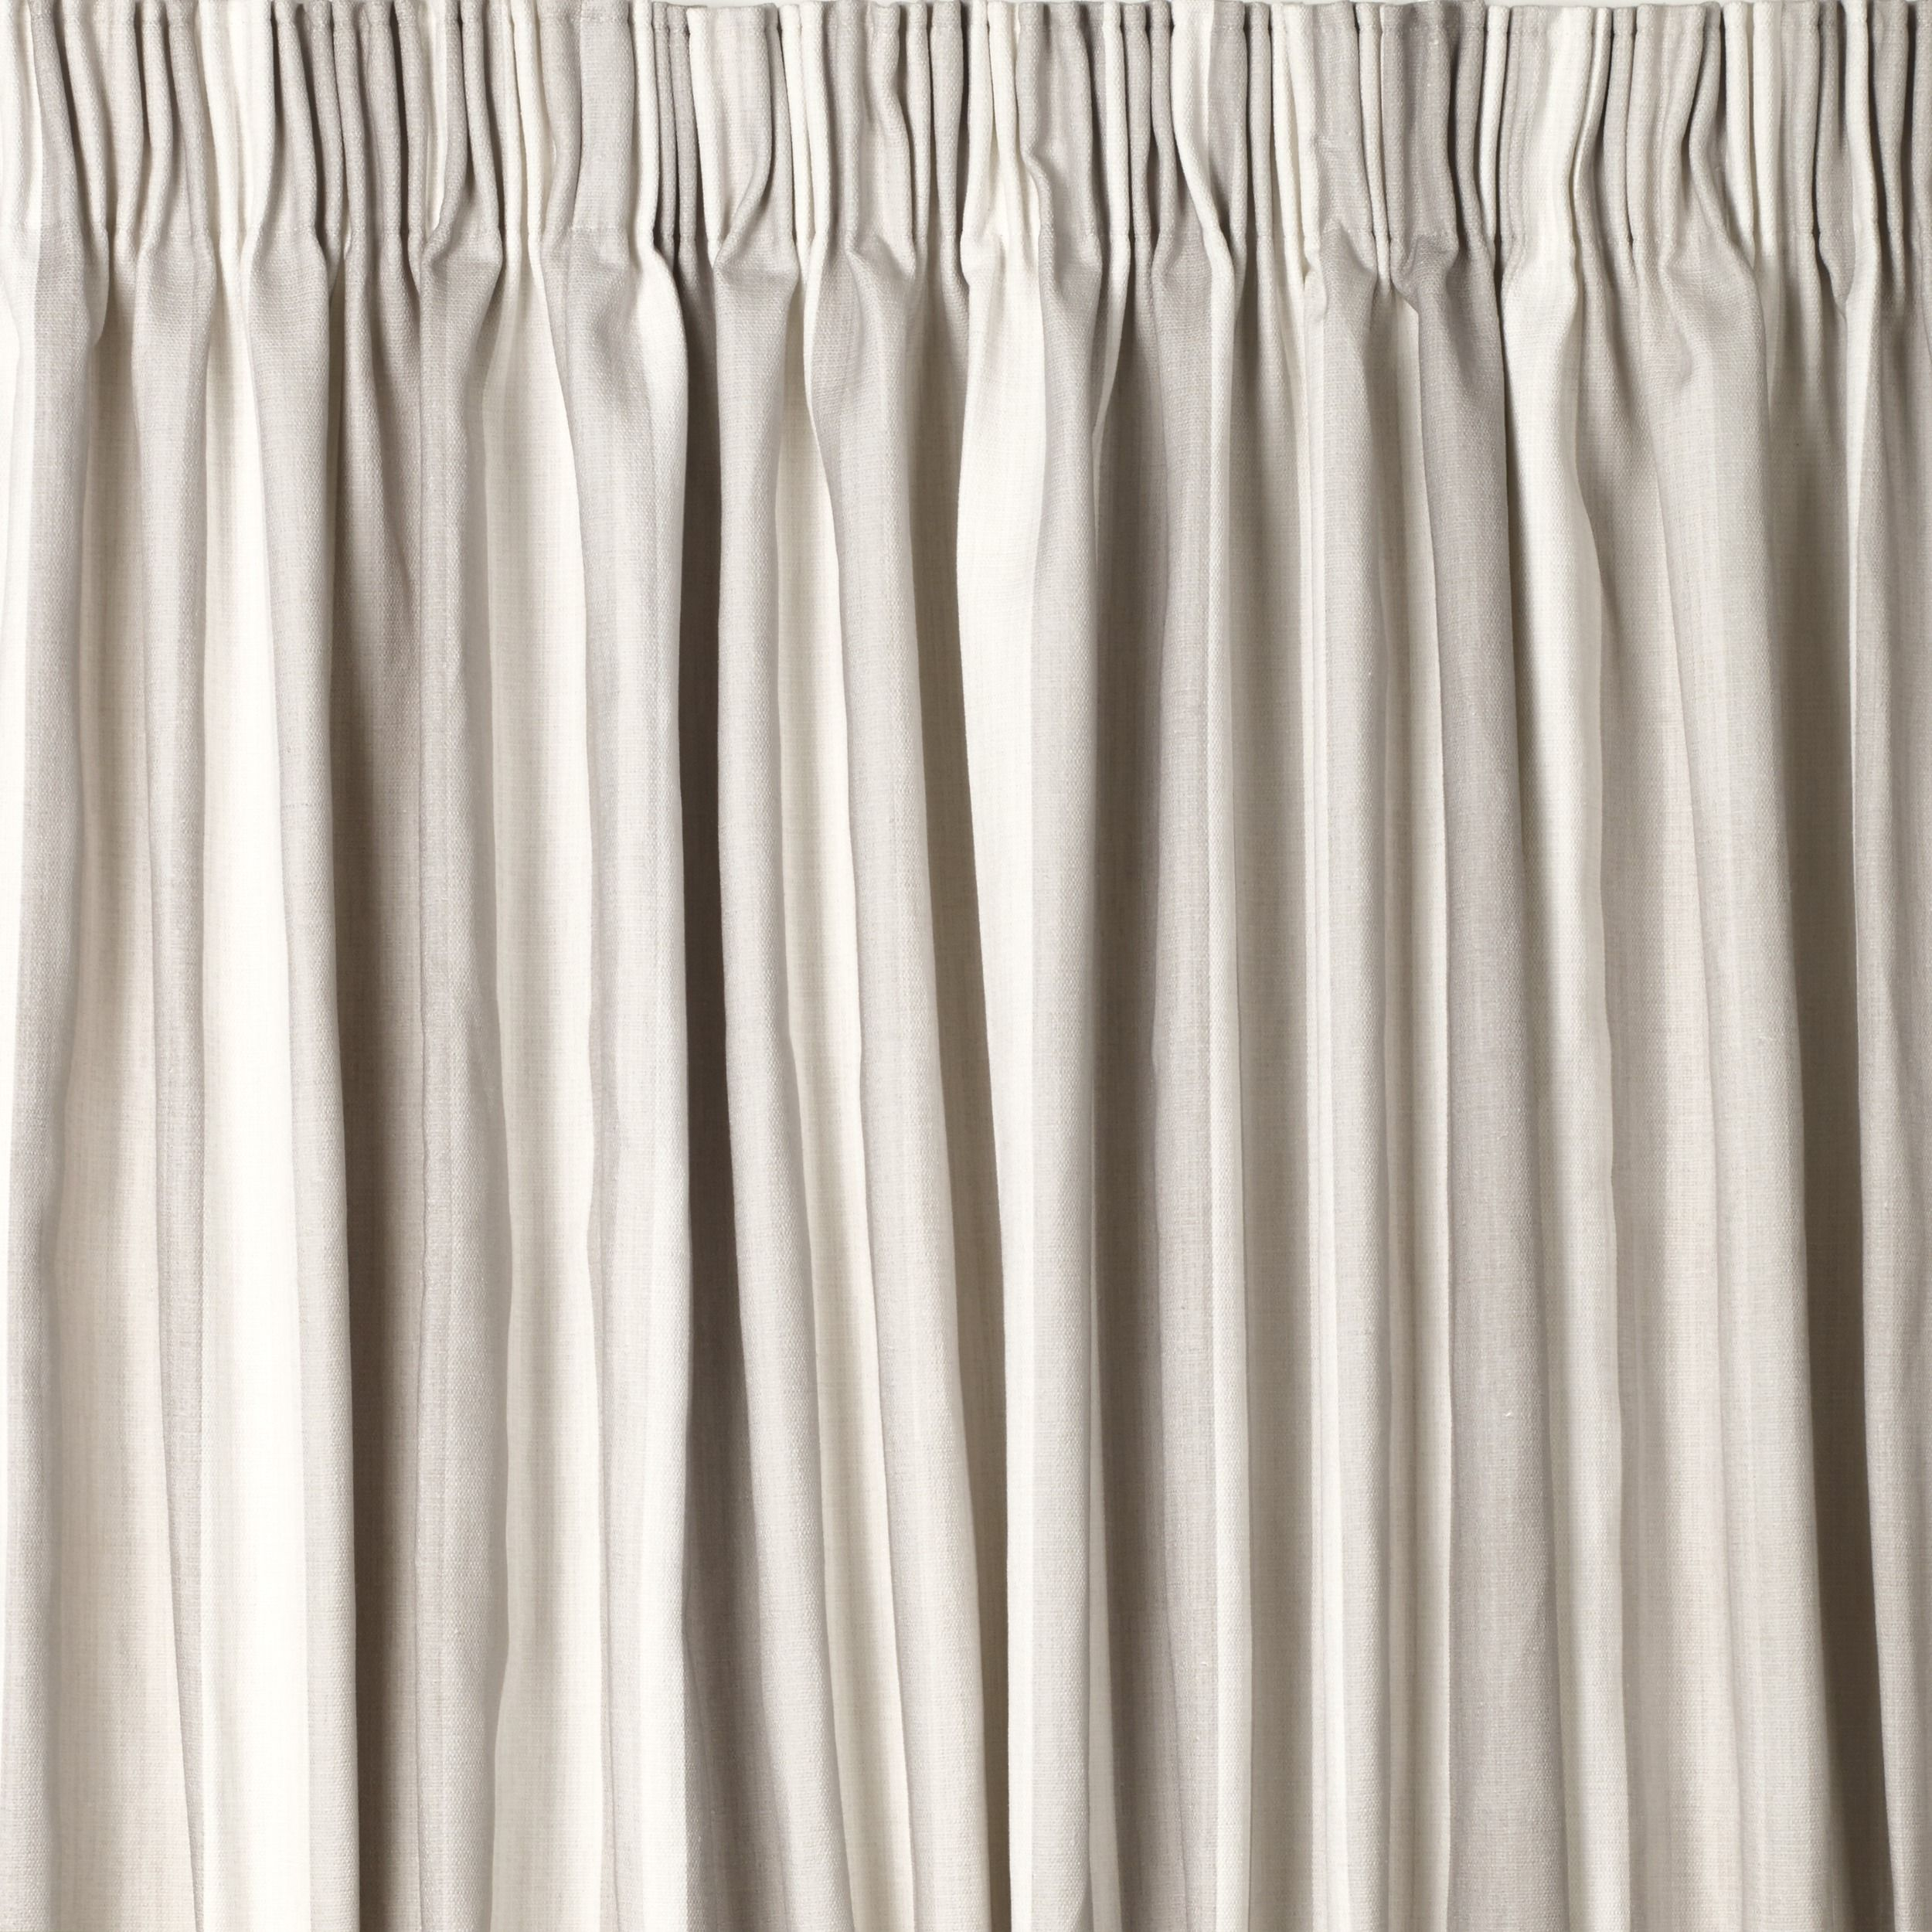 geo tan ethel full design ivory drapes trellis and remarkable window chambray blackout panel market curtains curtain black treatments world white flocked